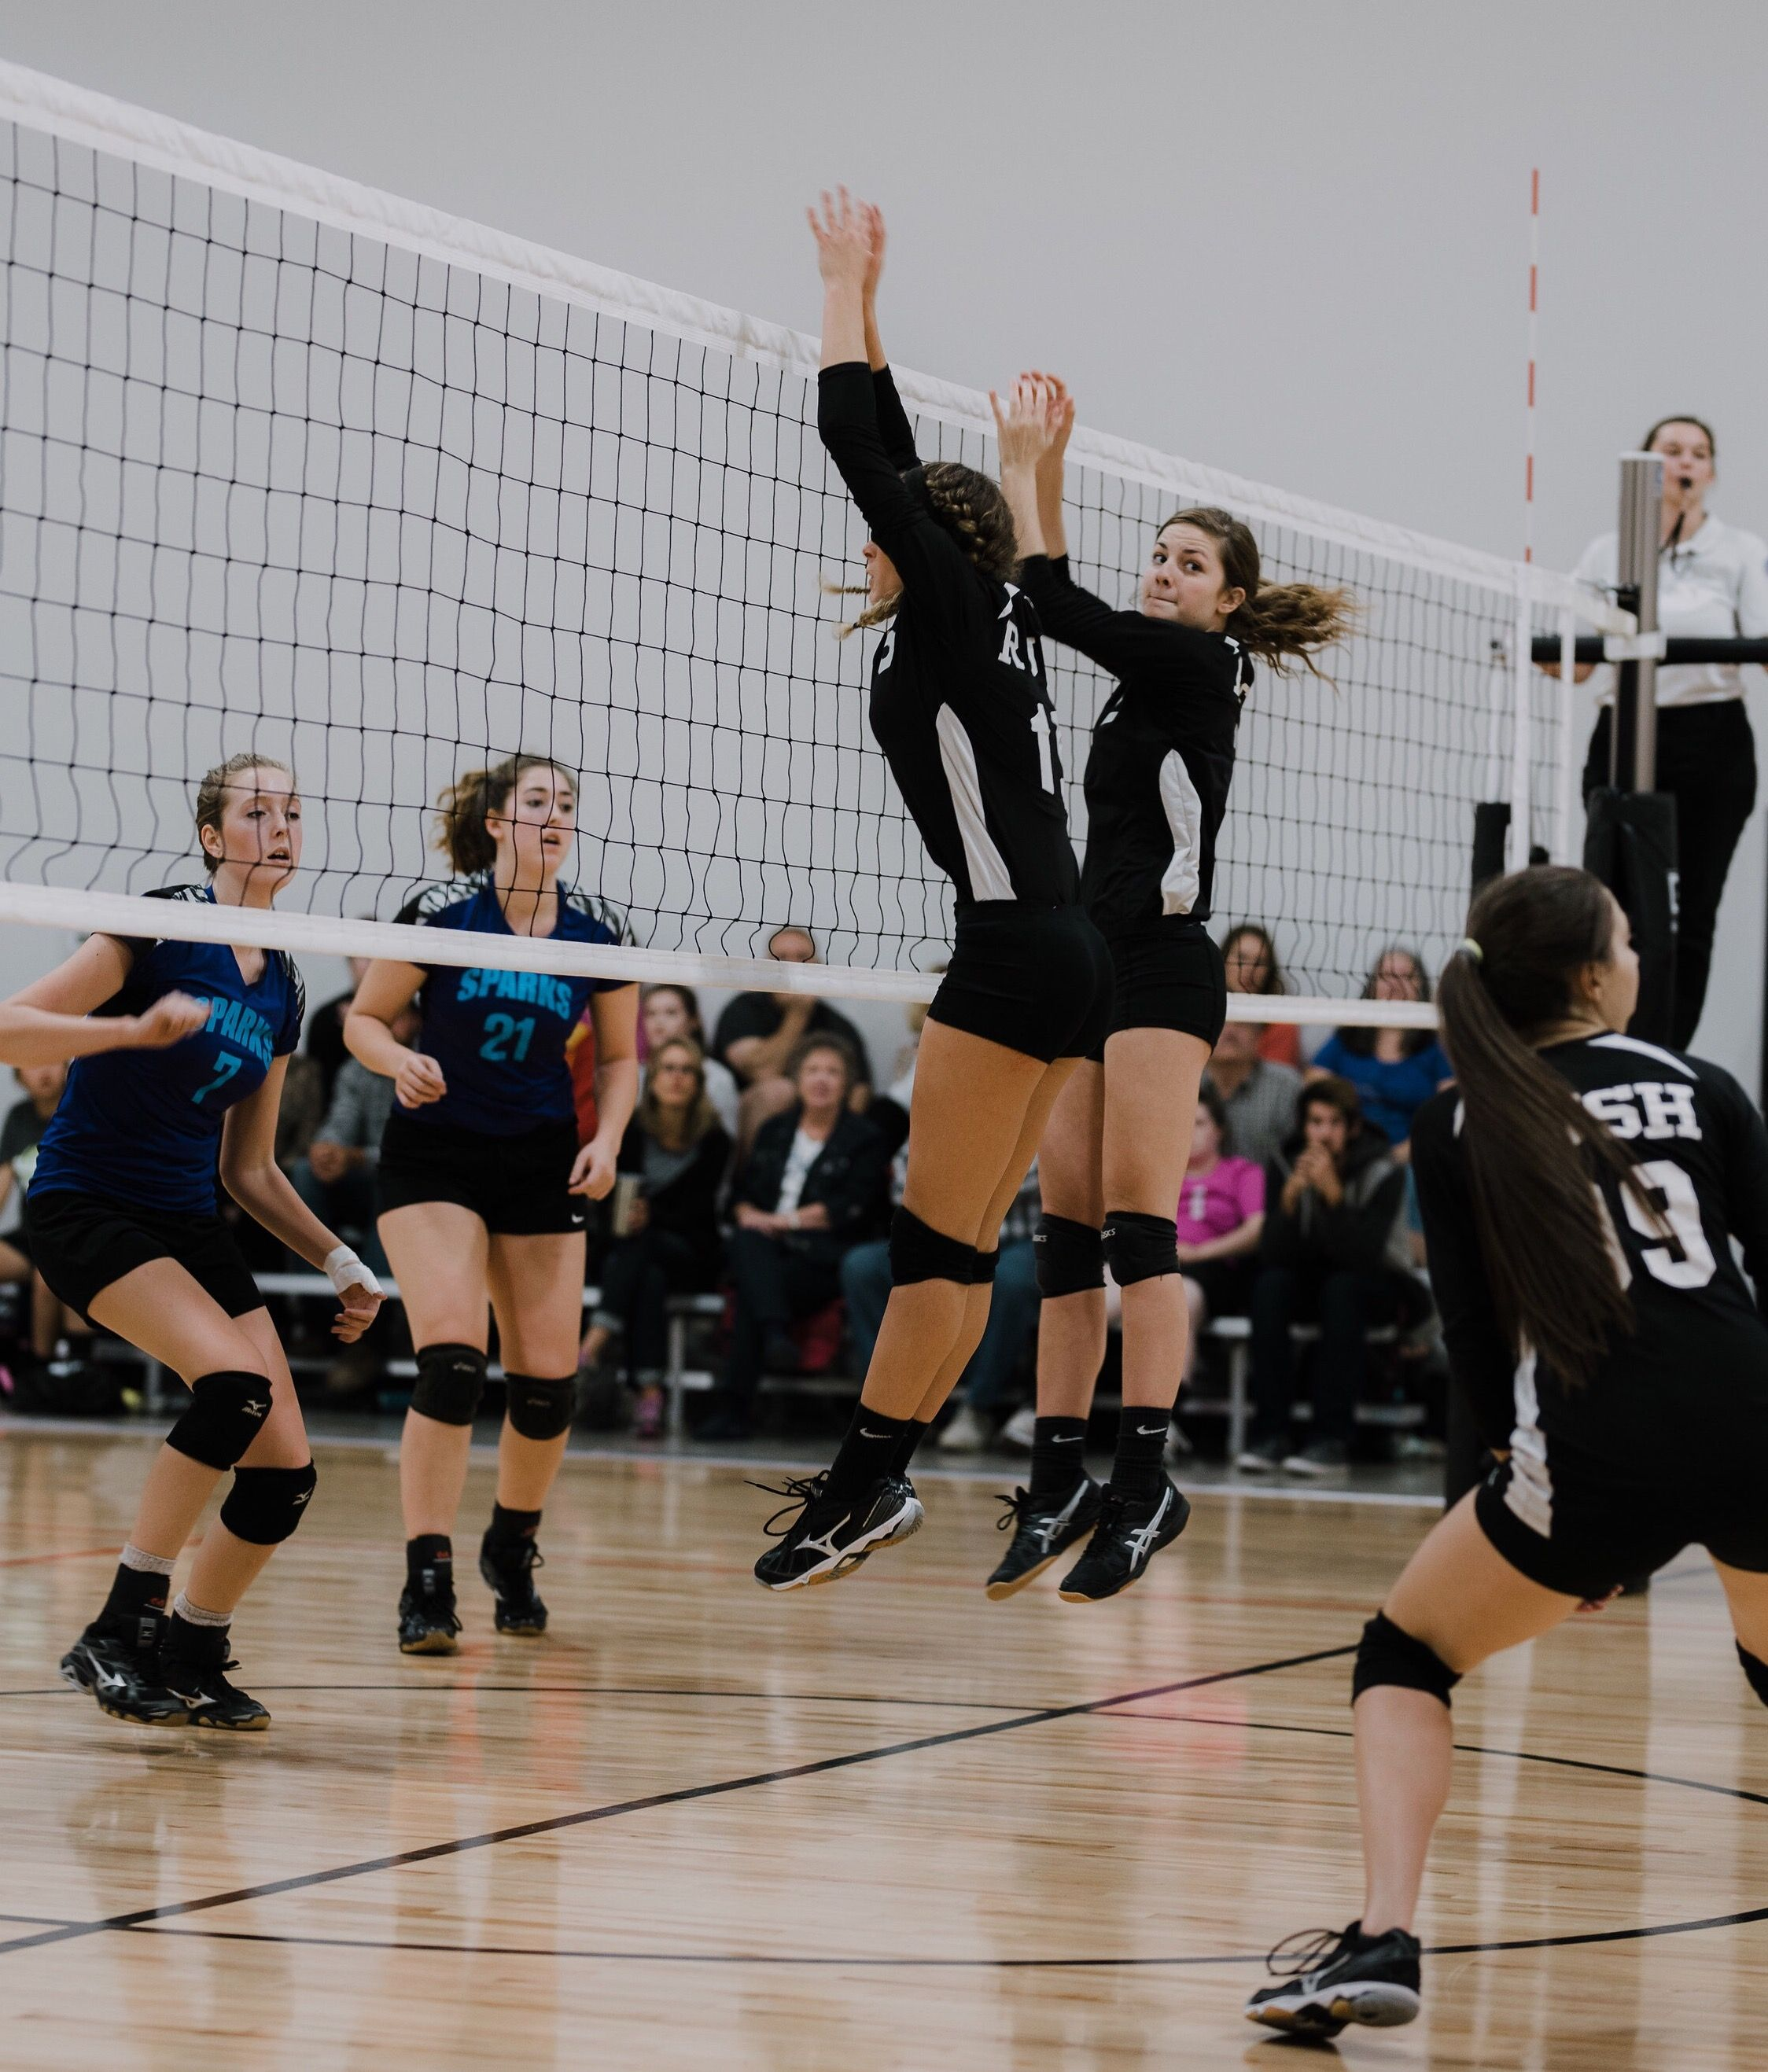 Pin Juliatops Vsco Juliatops Volleyball Pictures Volleyball Inspiration Volleyball Training